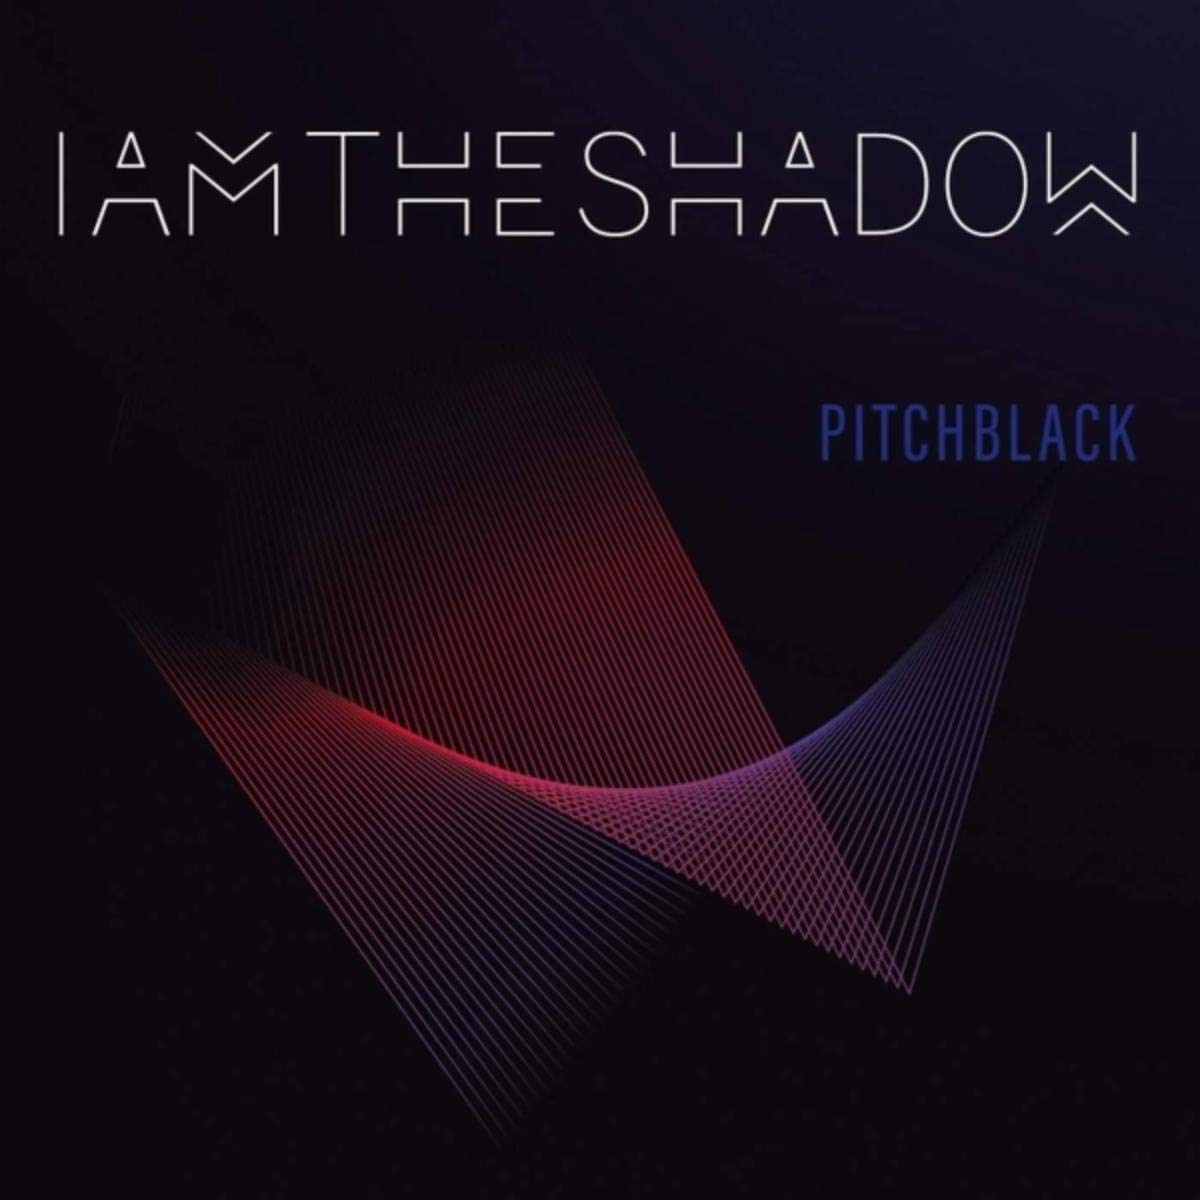 IAMTHESHADOW – Pitchblack (2020) [FLAC]